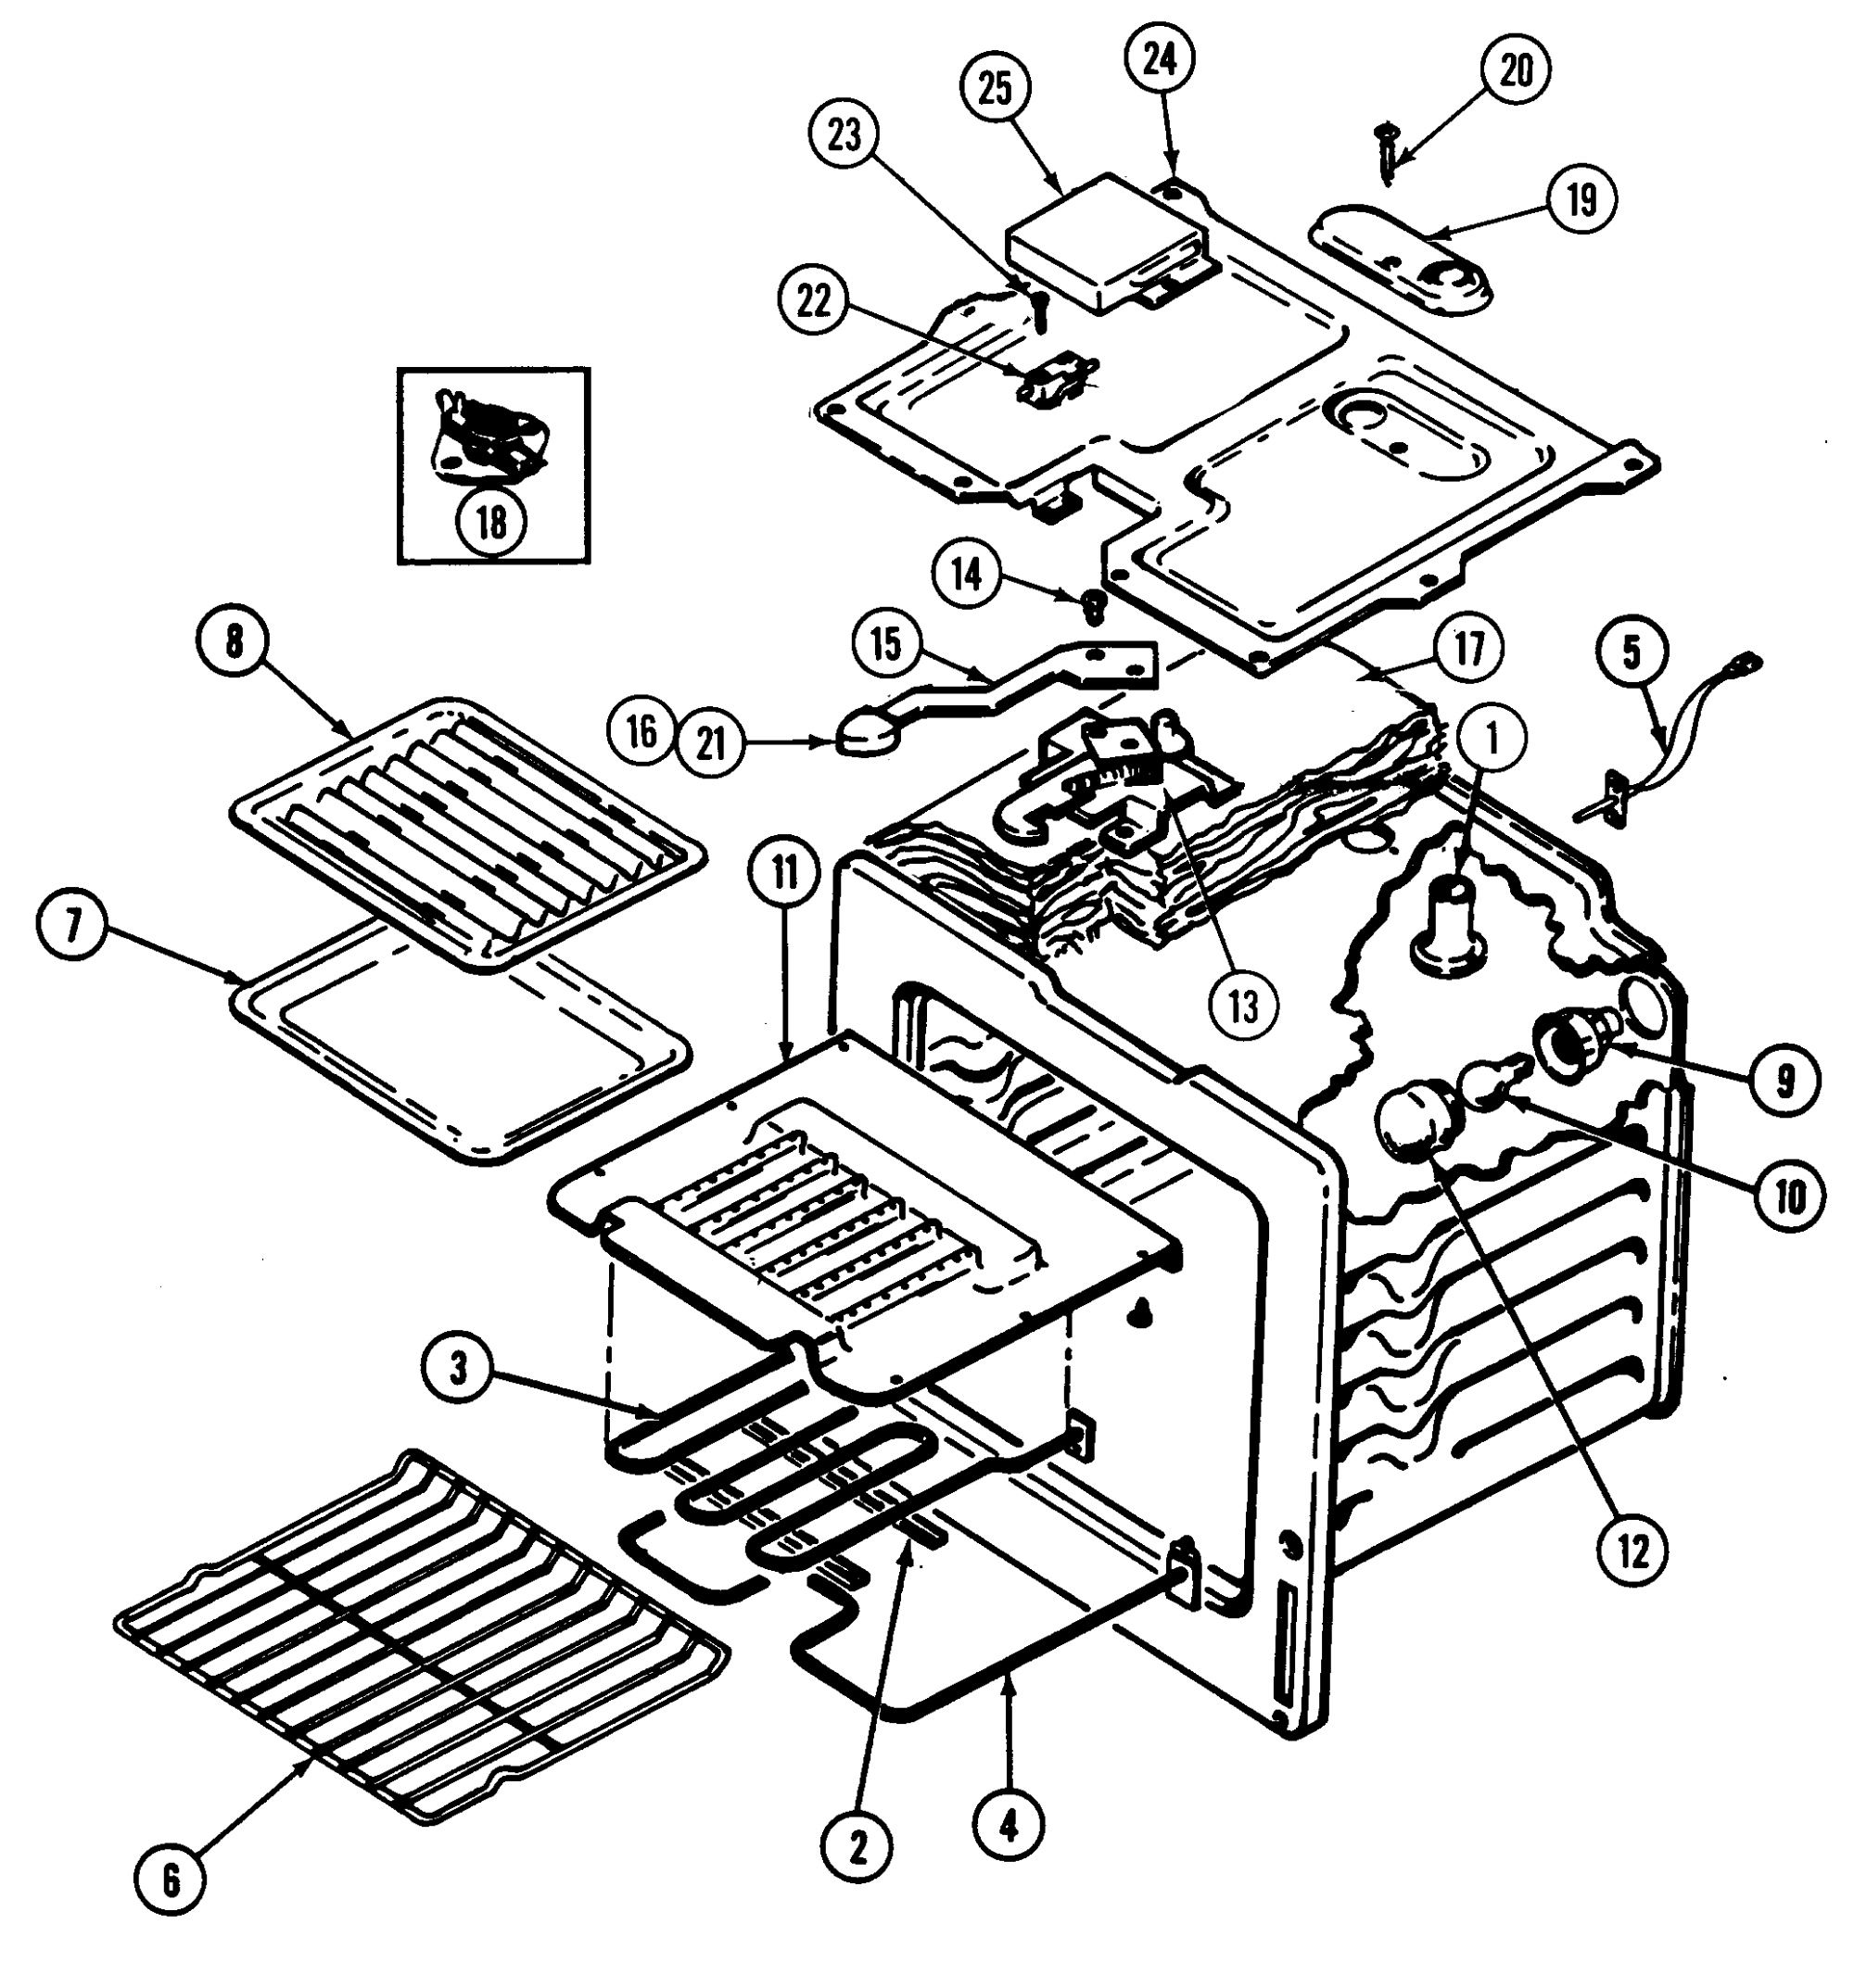 hight resolution of cre9500adw range oven parts diagram